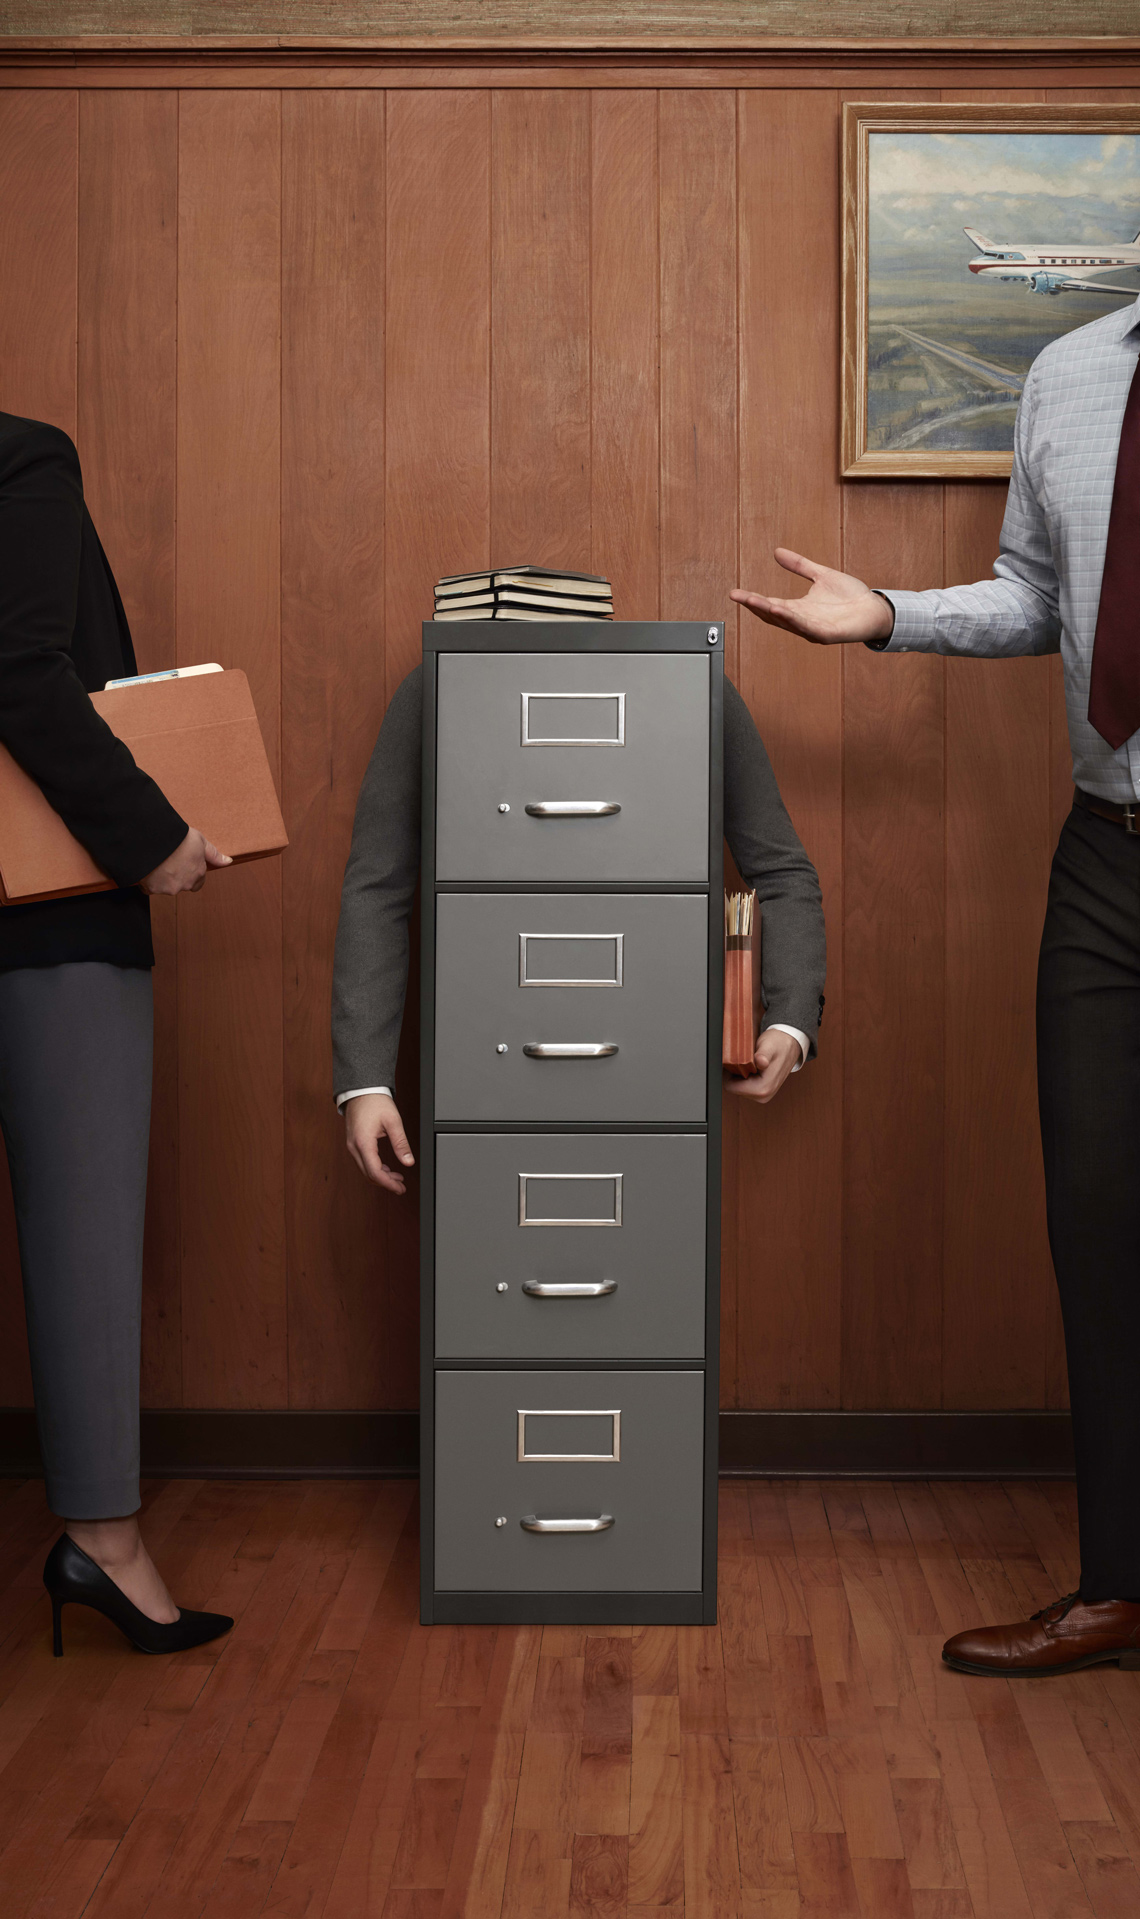 person disguised as a filing cabinet surrounded by other people by Simon Duhamel for Berlitz and Rethink